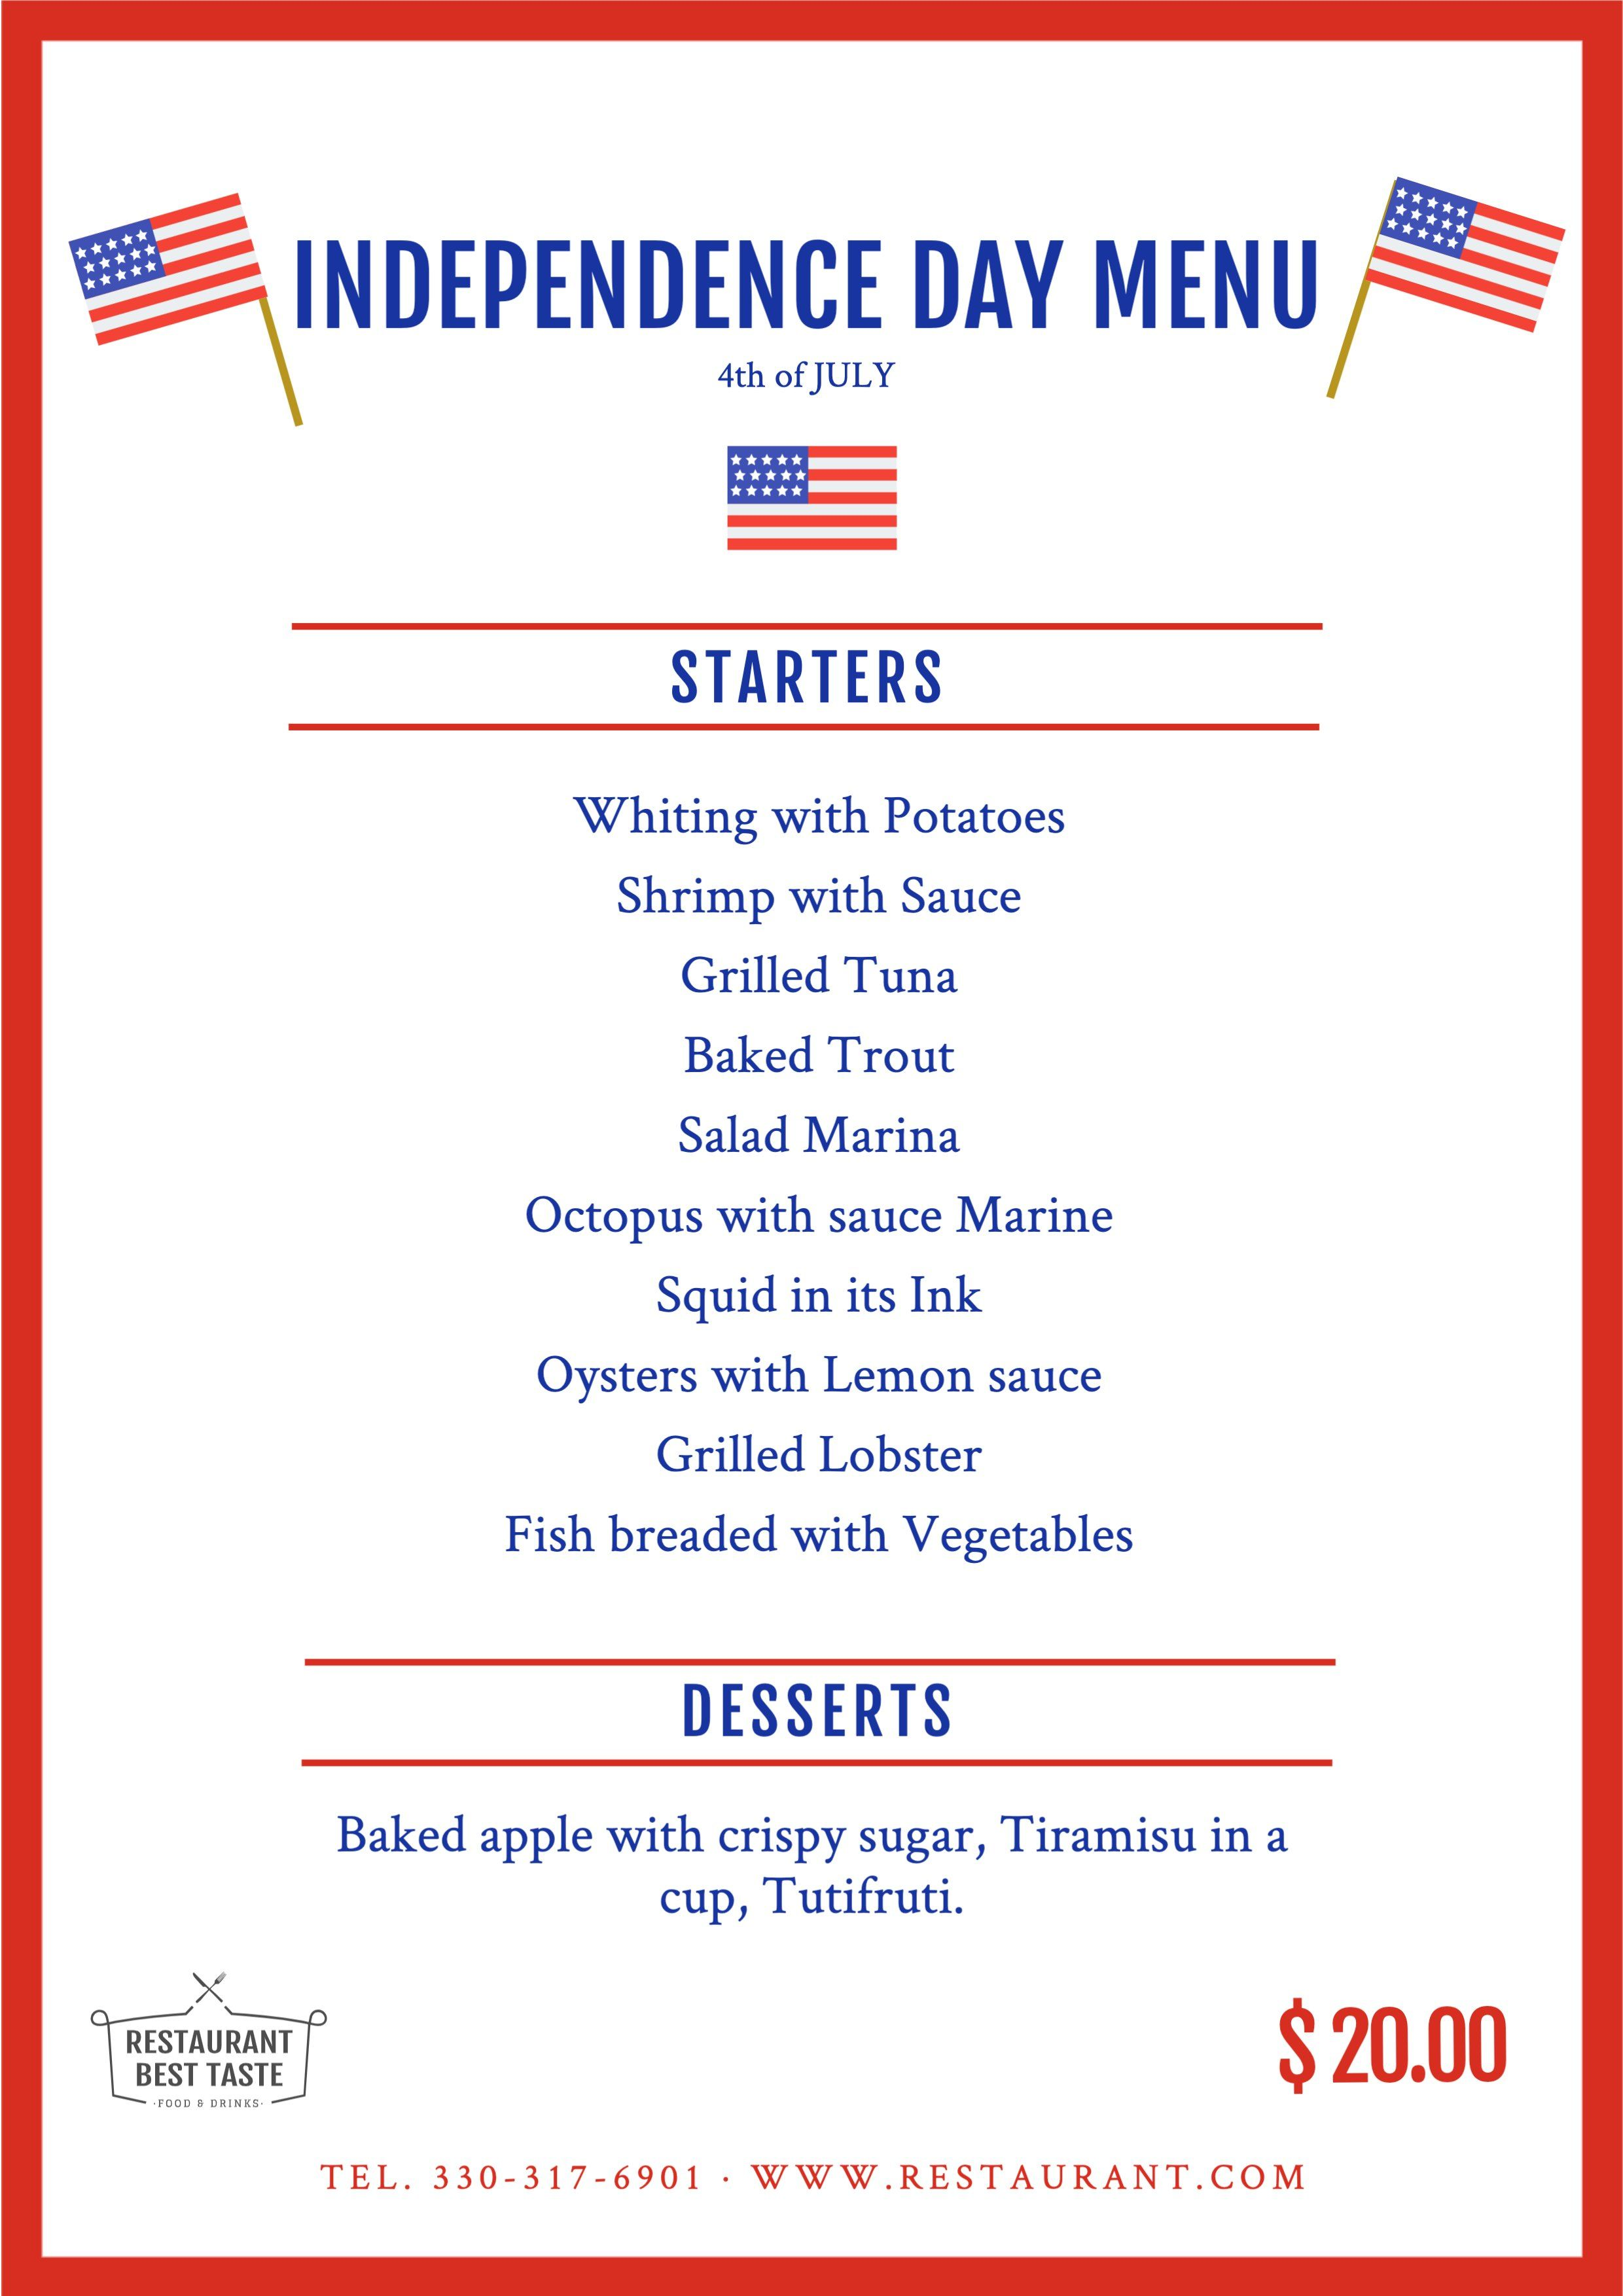 Independence Day Menu To Edit For Restaurants Restaurant Restaurant Menu Template Baked Trout 4th of july menu template